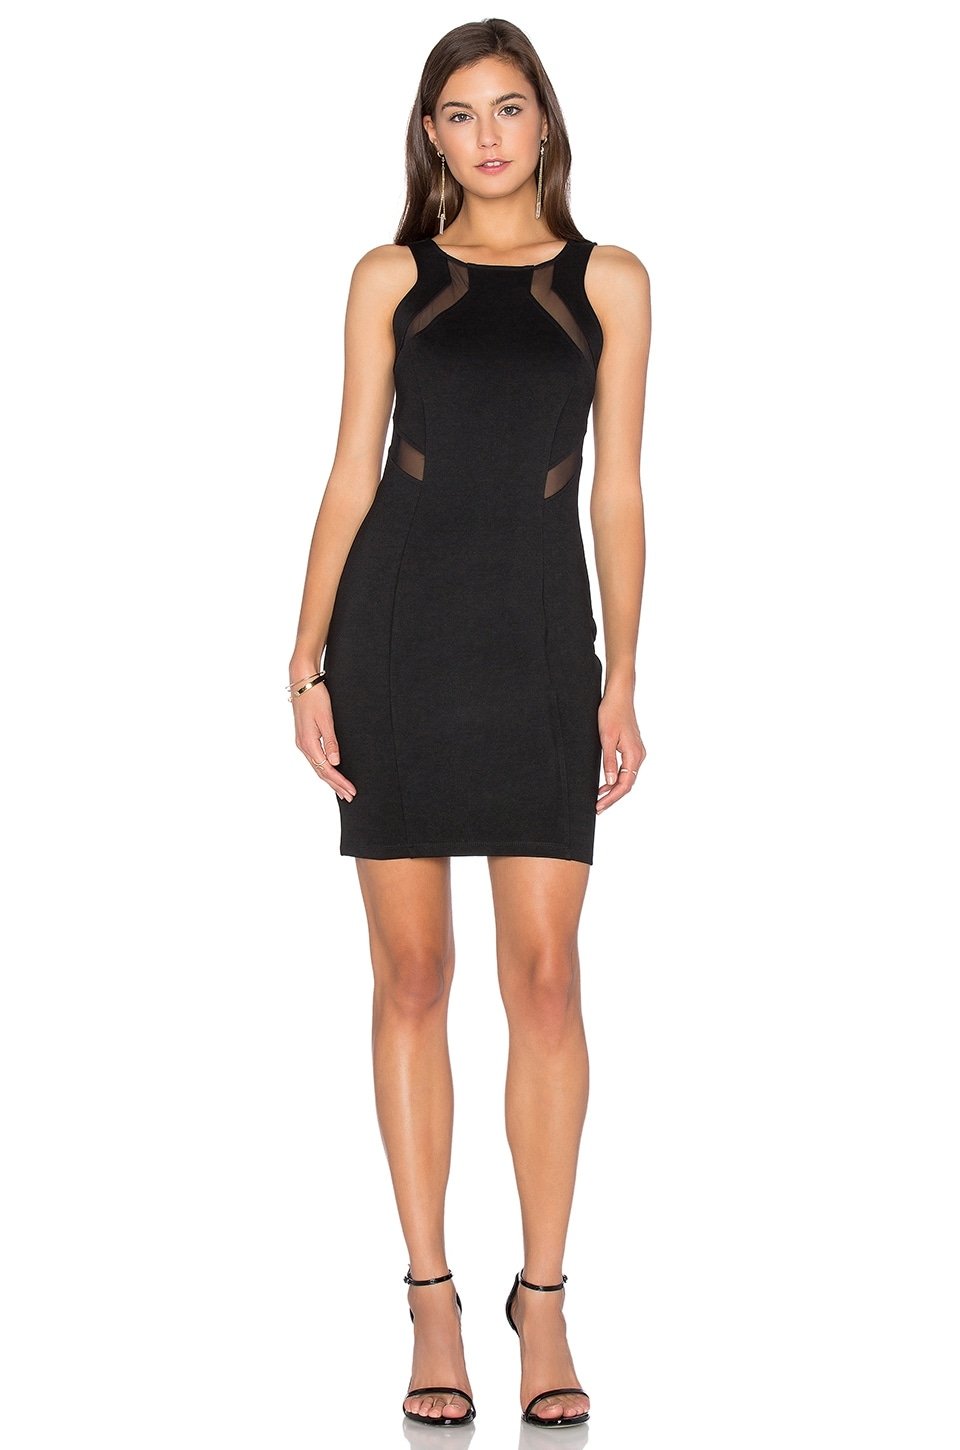 Bobi BLACK Double Knit Sleeveless Bodycon Mini Dress in Black